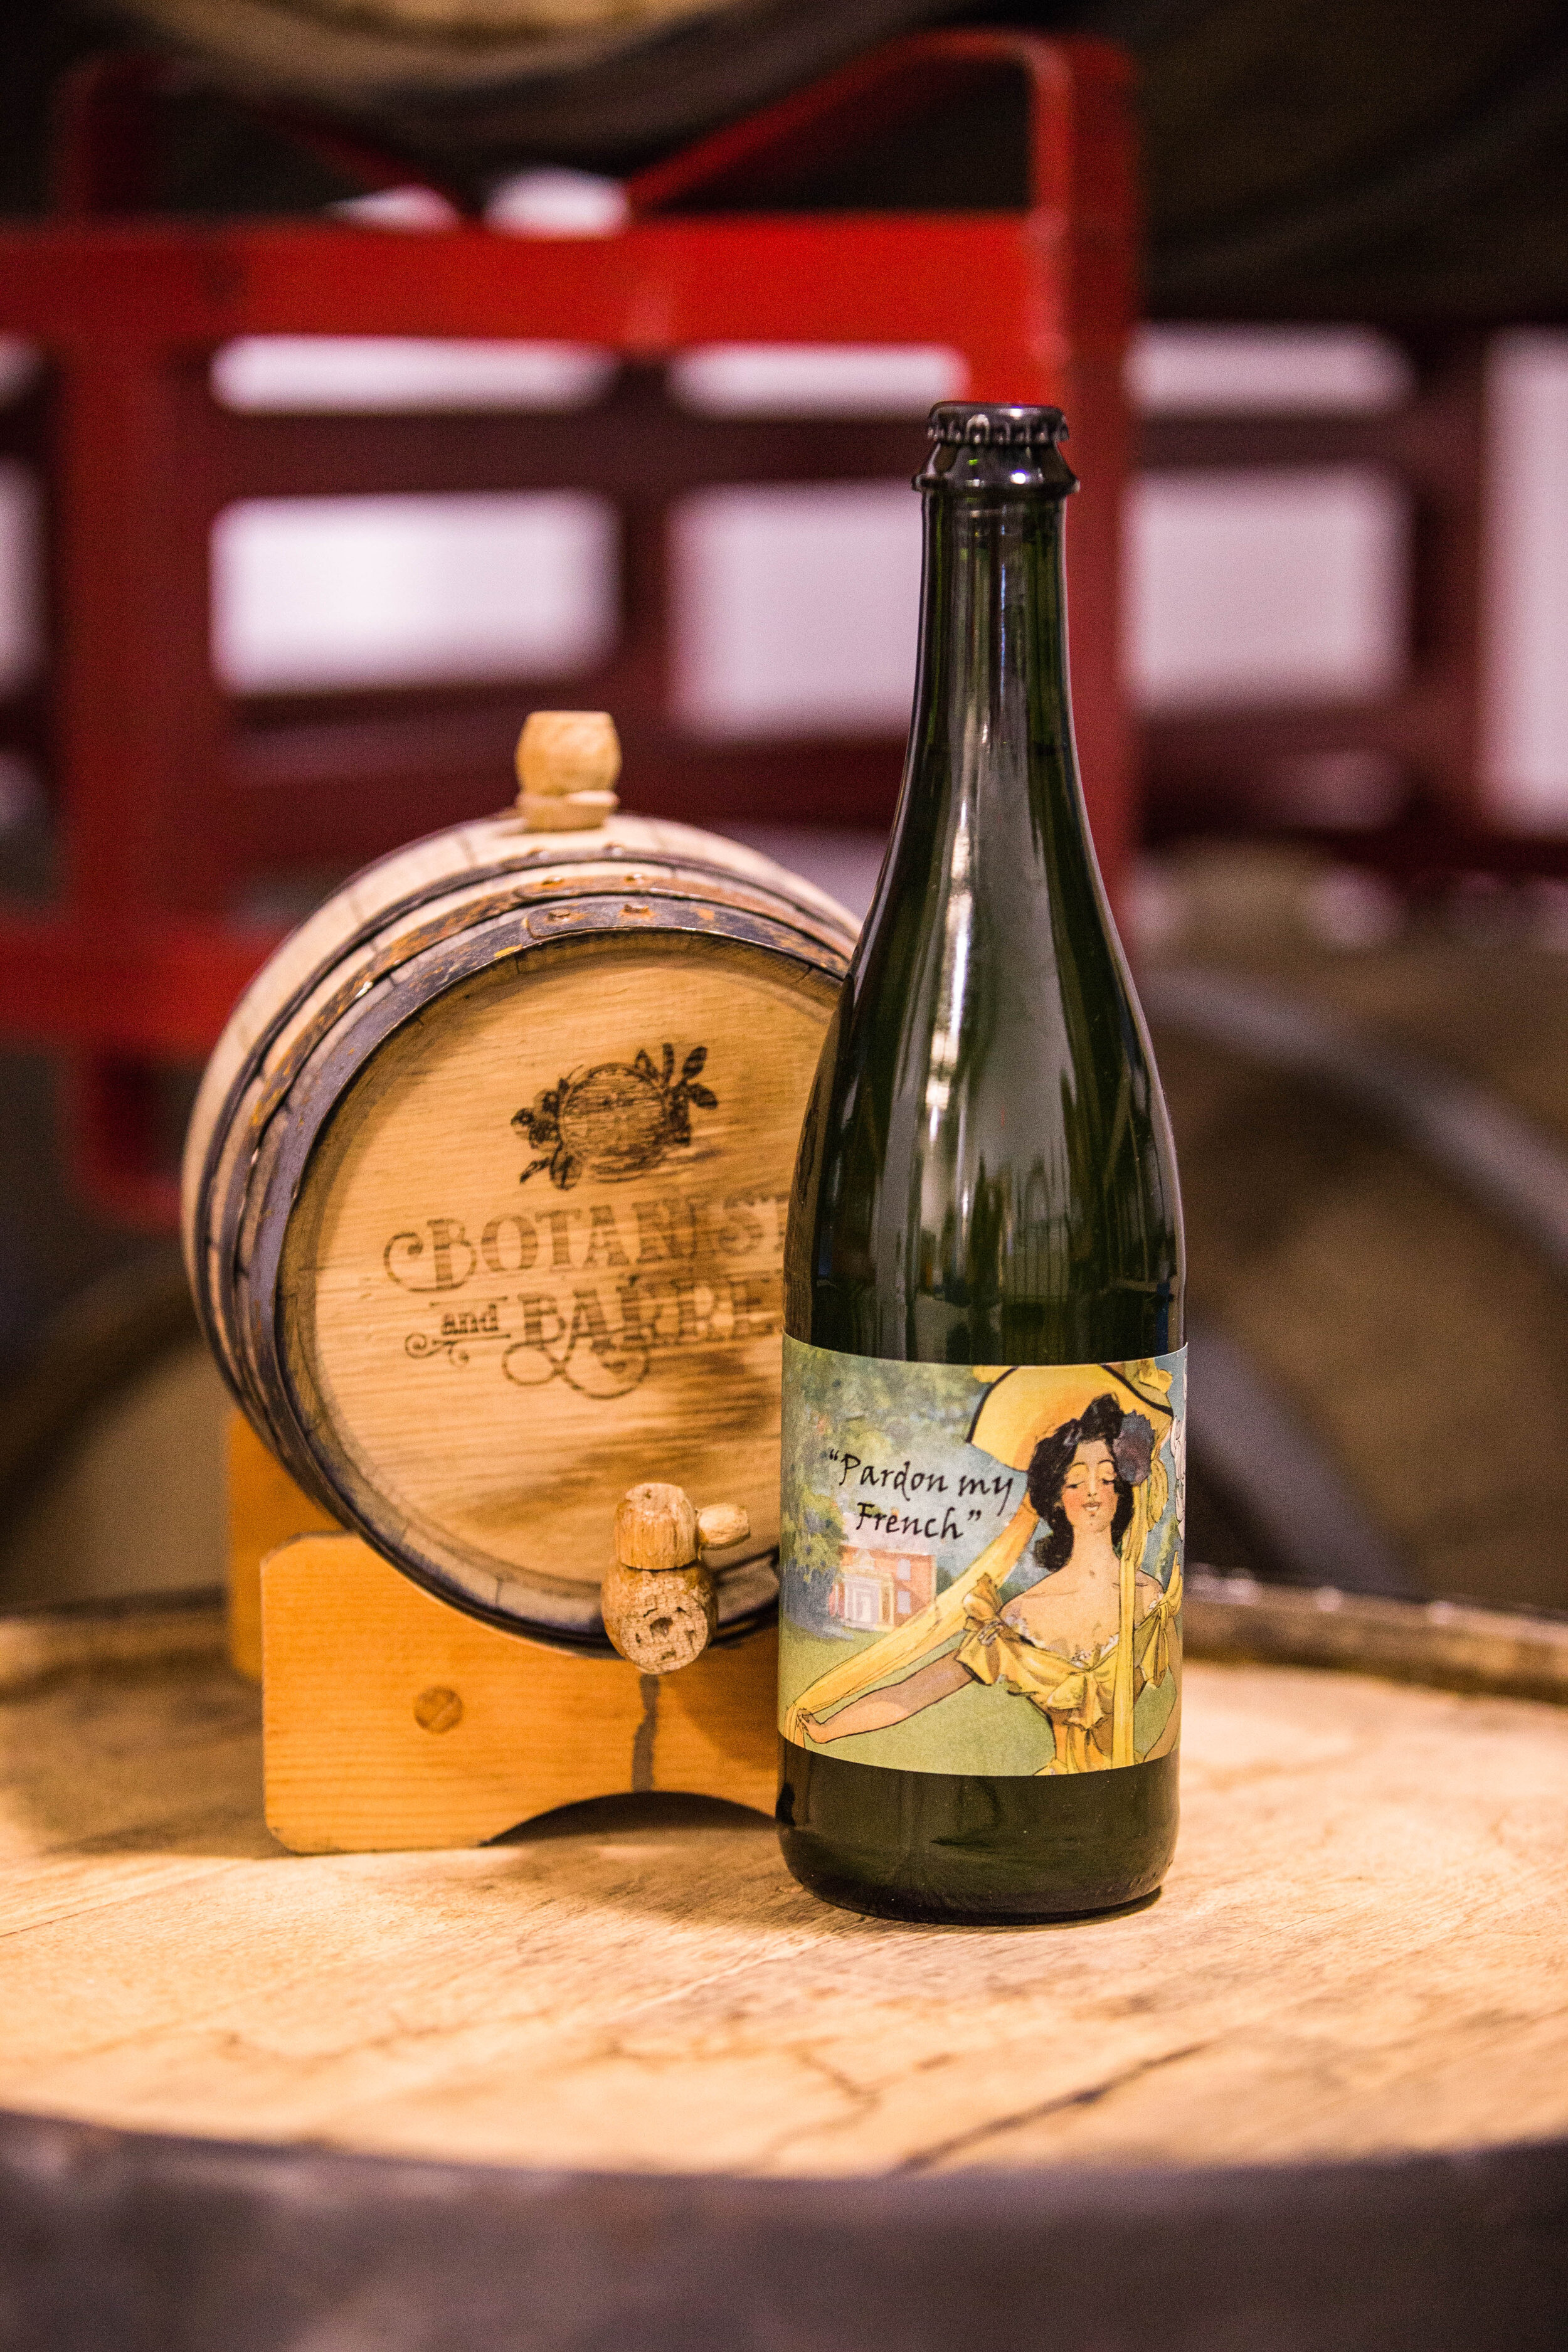 Pardon My French - A special blend of late season apples aged in Sauternes barrels.